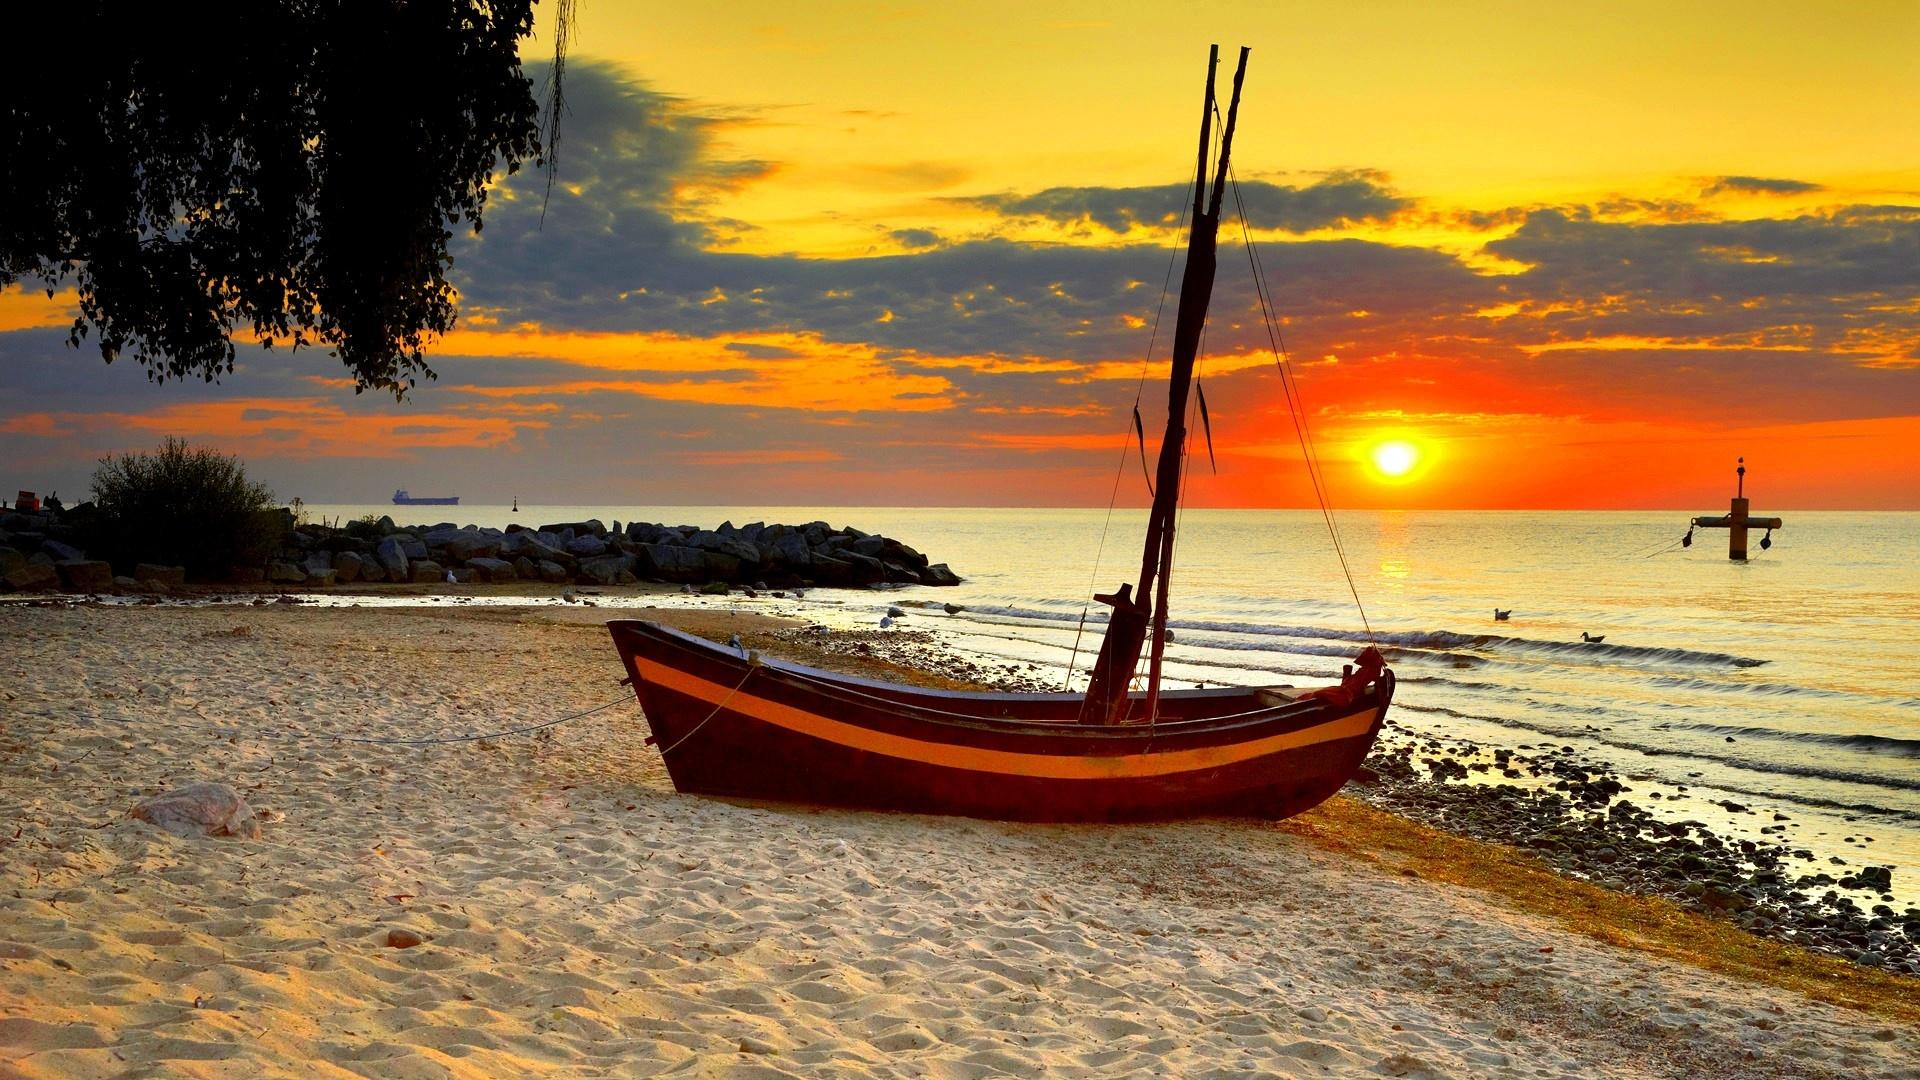 18 beach sunset sailboats hd wallpapers desktop widescreen ...